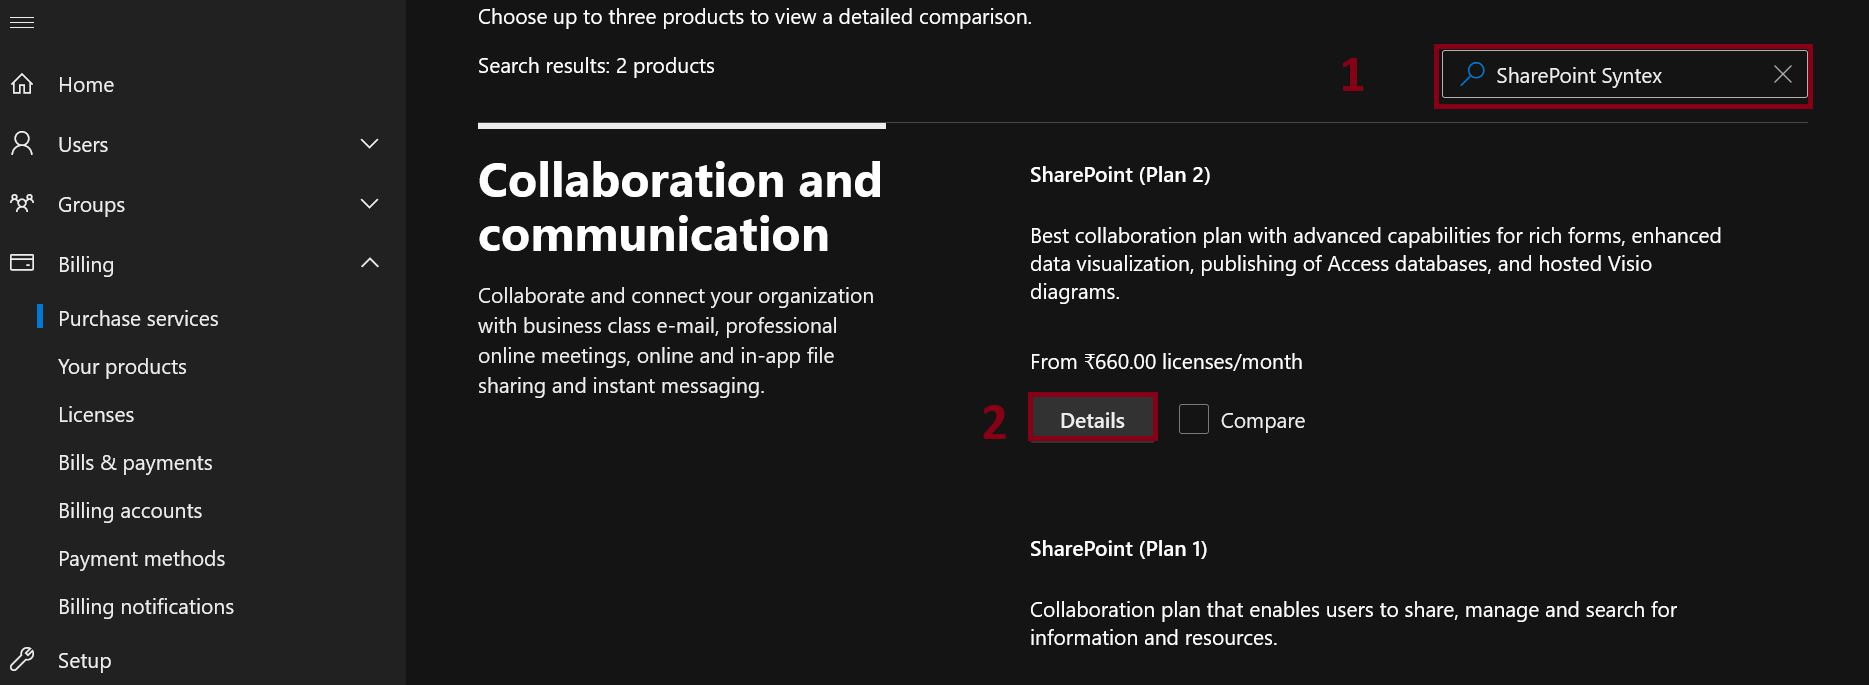 SharePoint Syntex add in from Microsoft 365 admin center